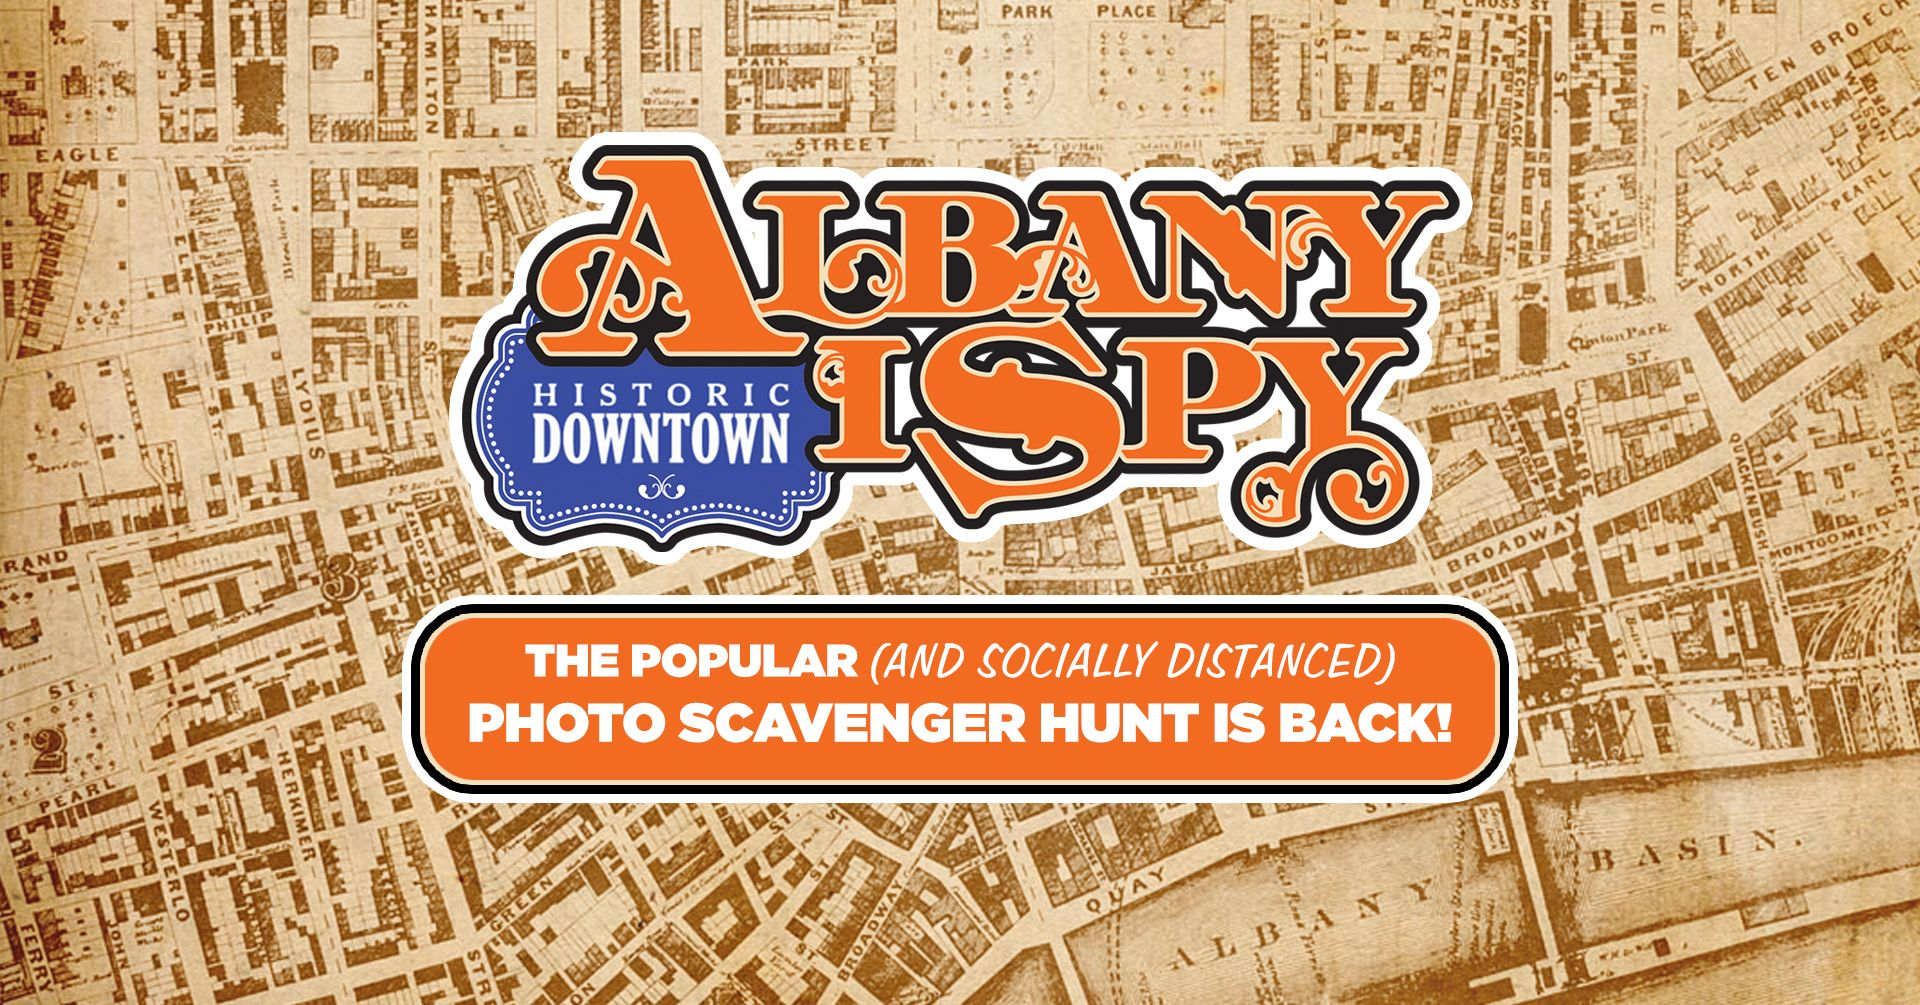 Go on Albany I Spy Scavenger Hunt with these 12 Clues in